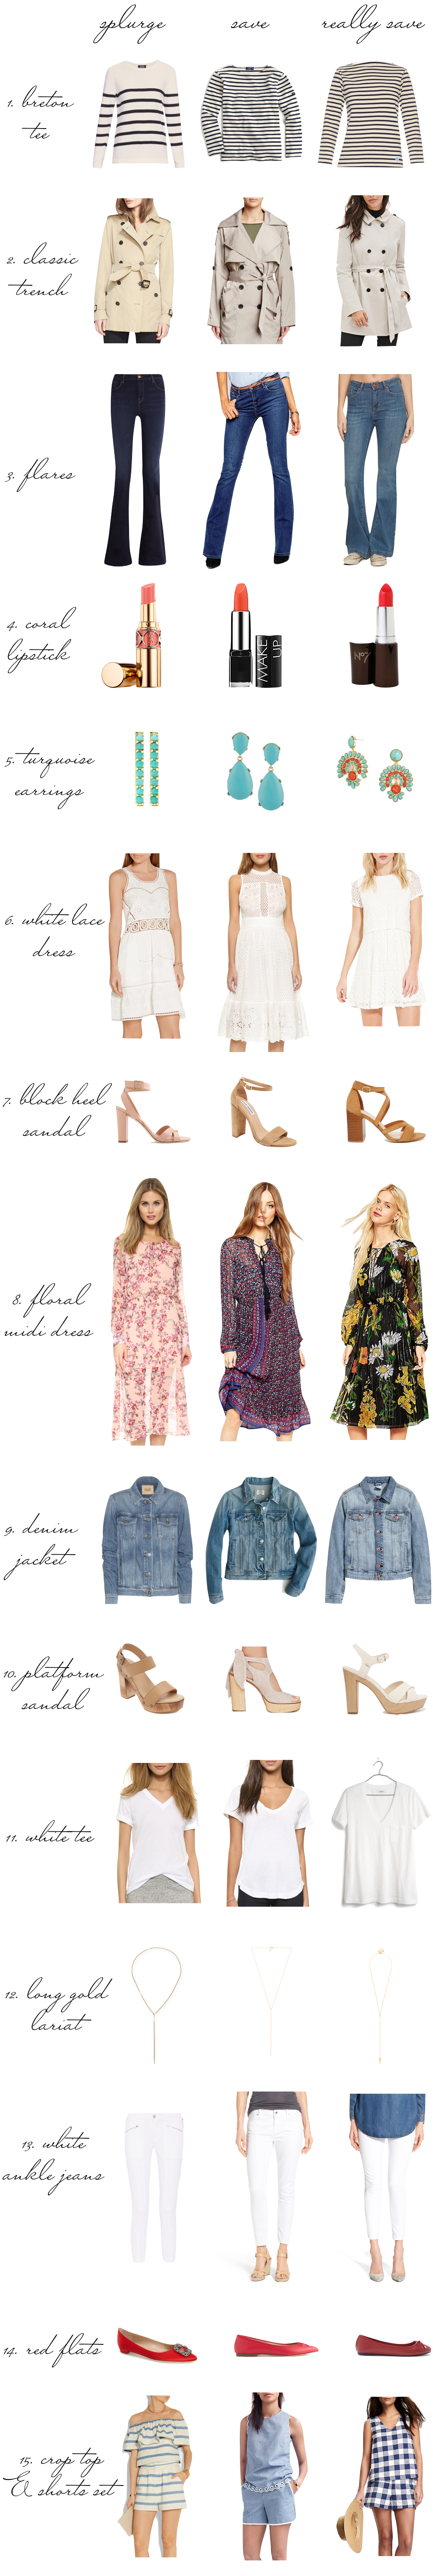 spring style at three price points.001